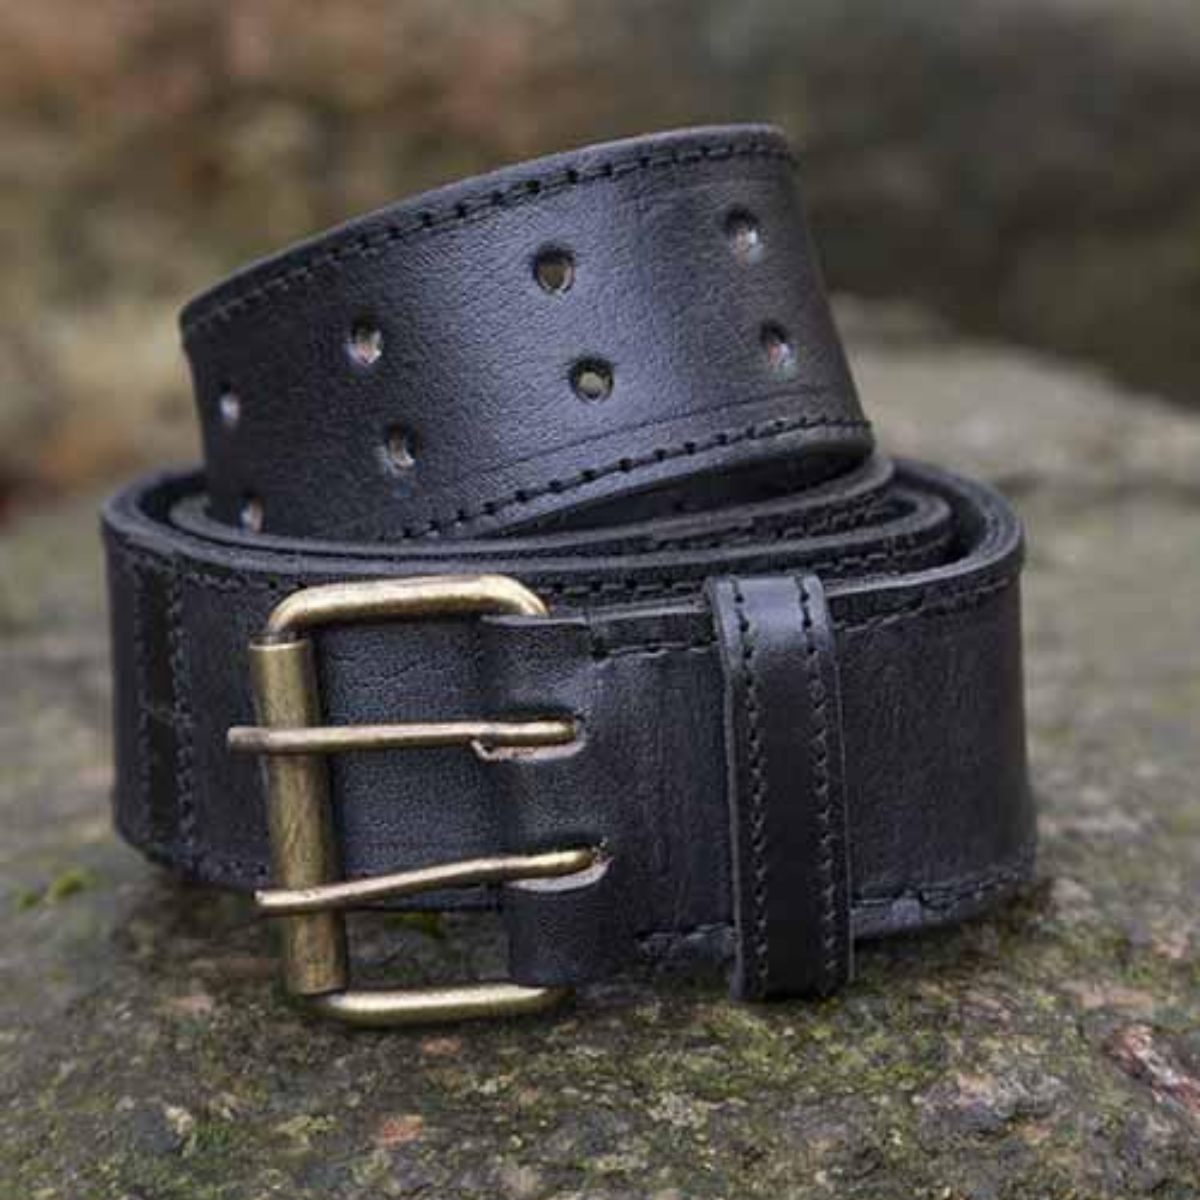 Belt with rings, black